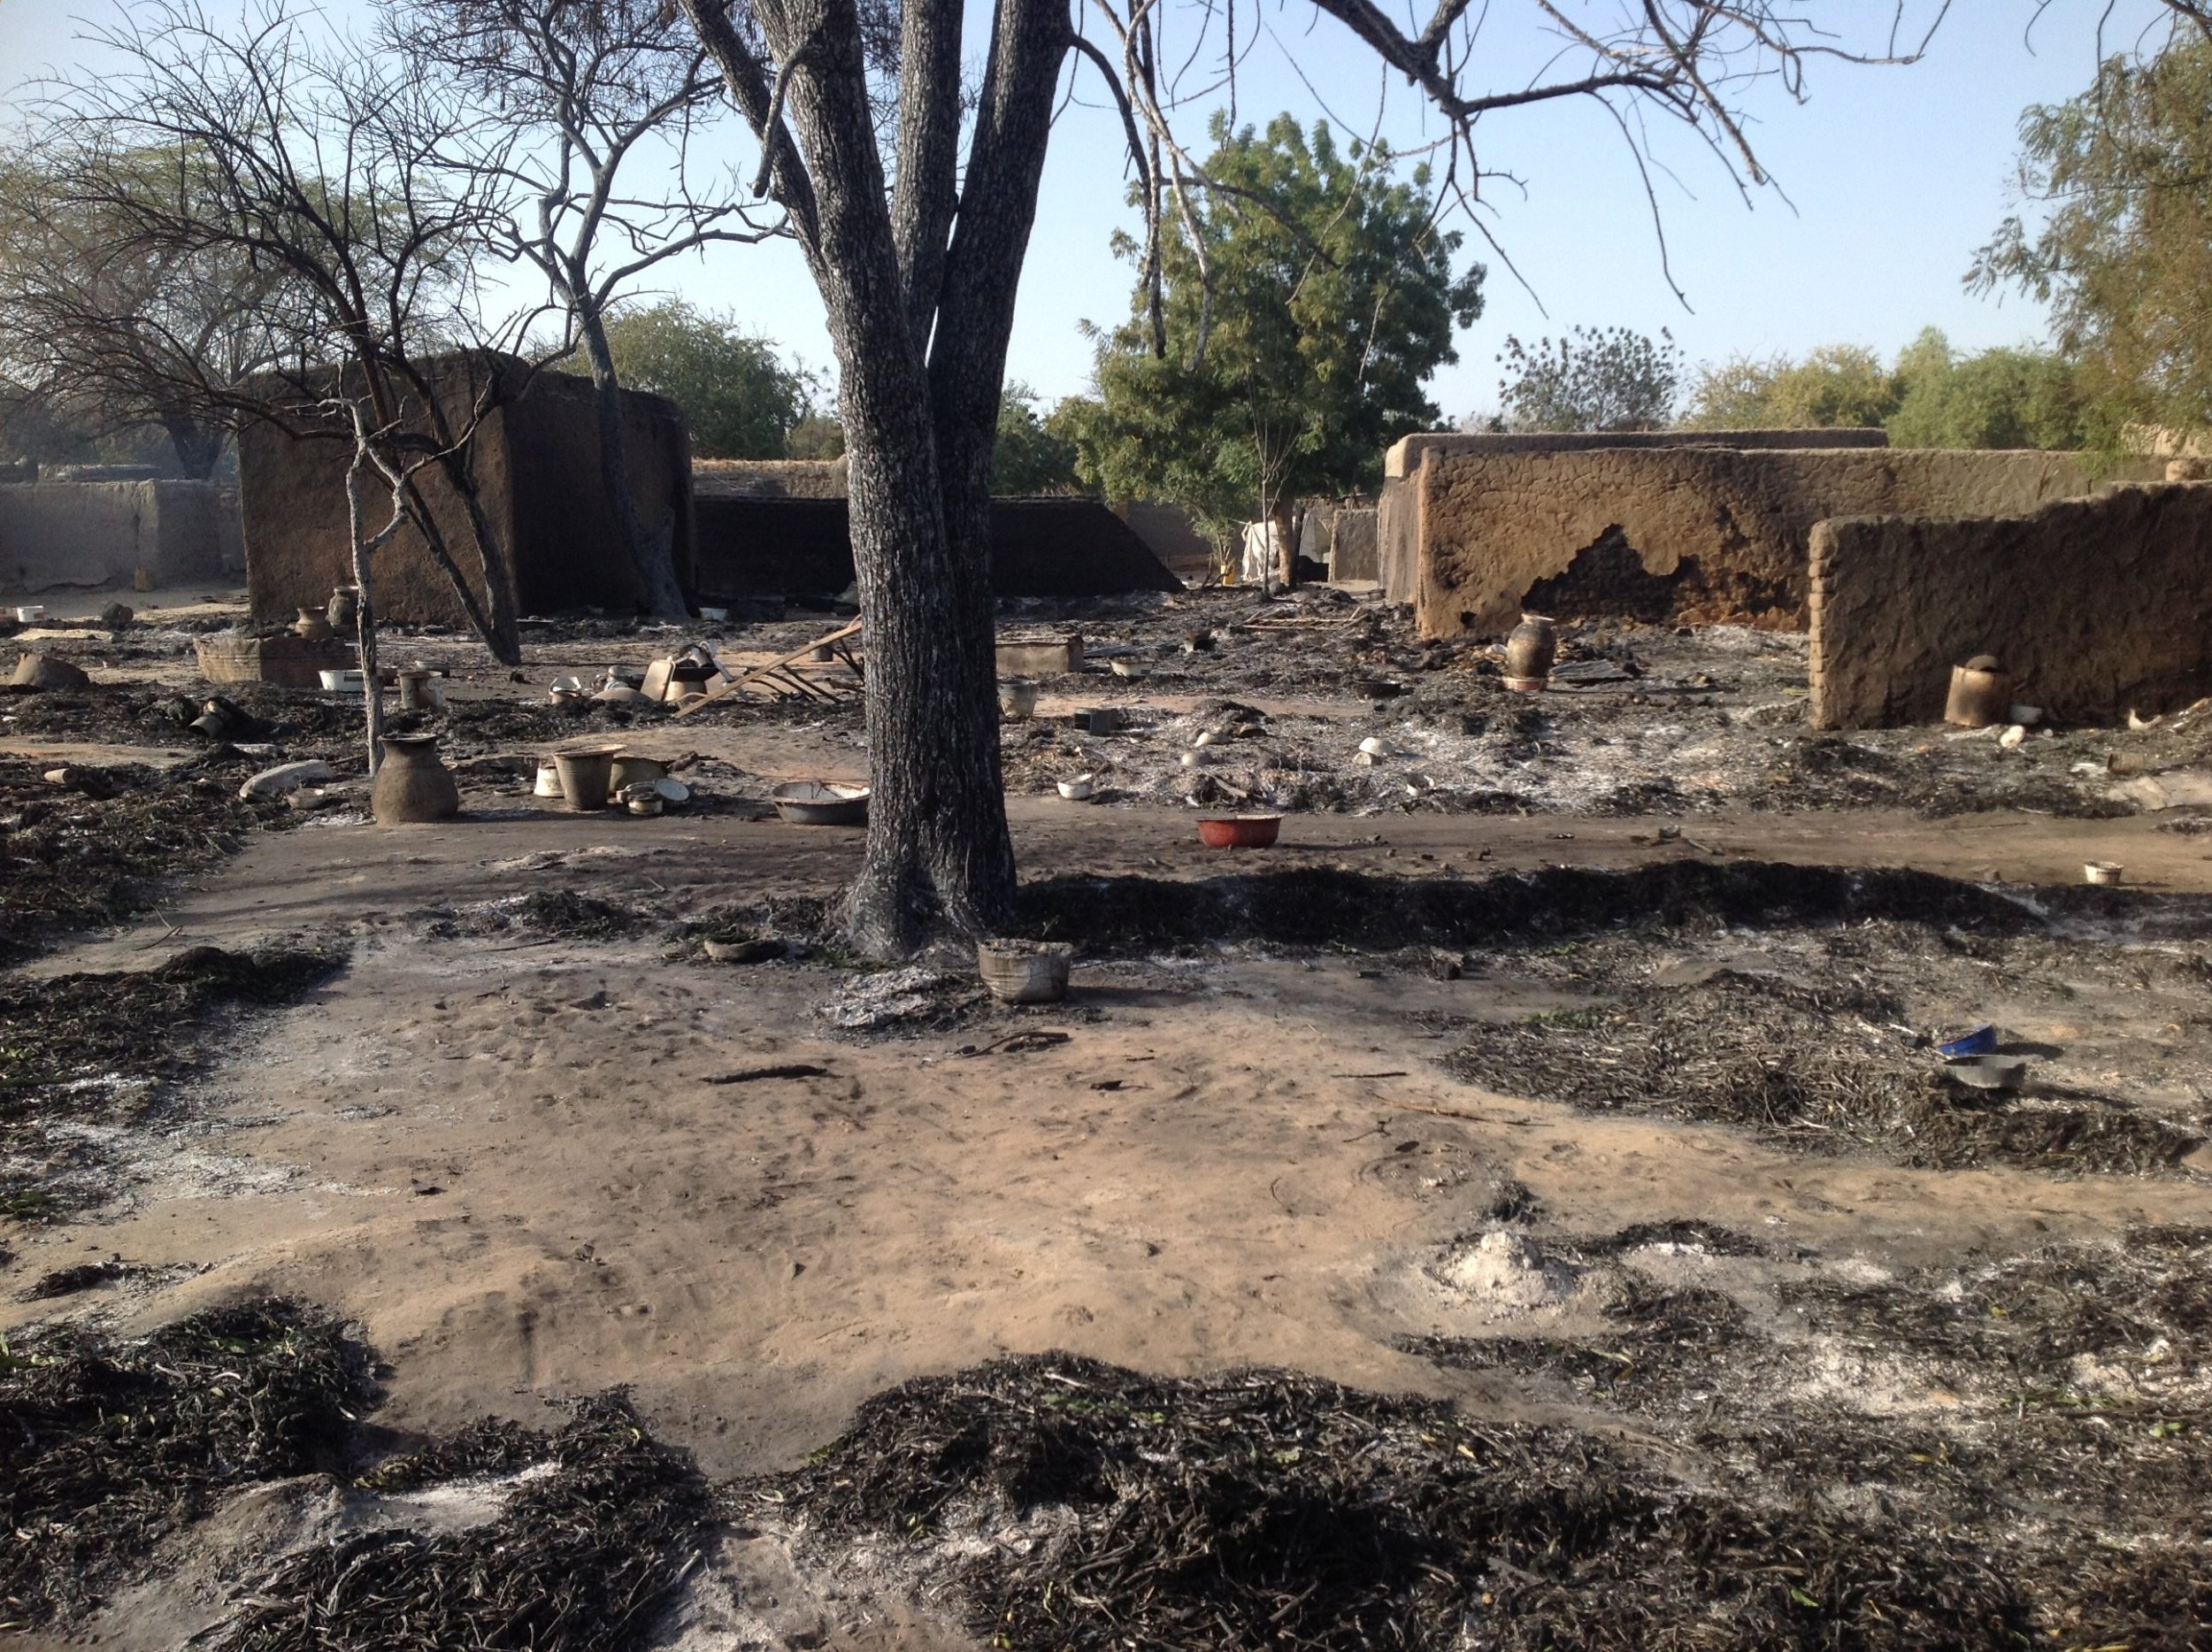 Boko Haram burnt village